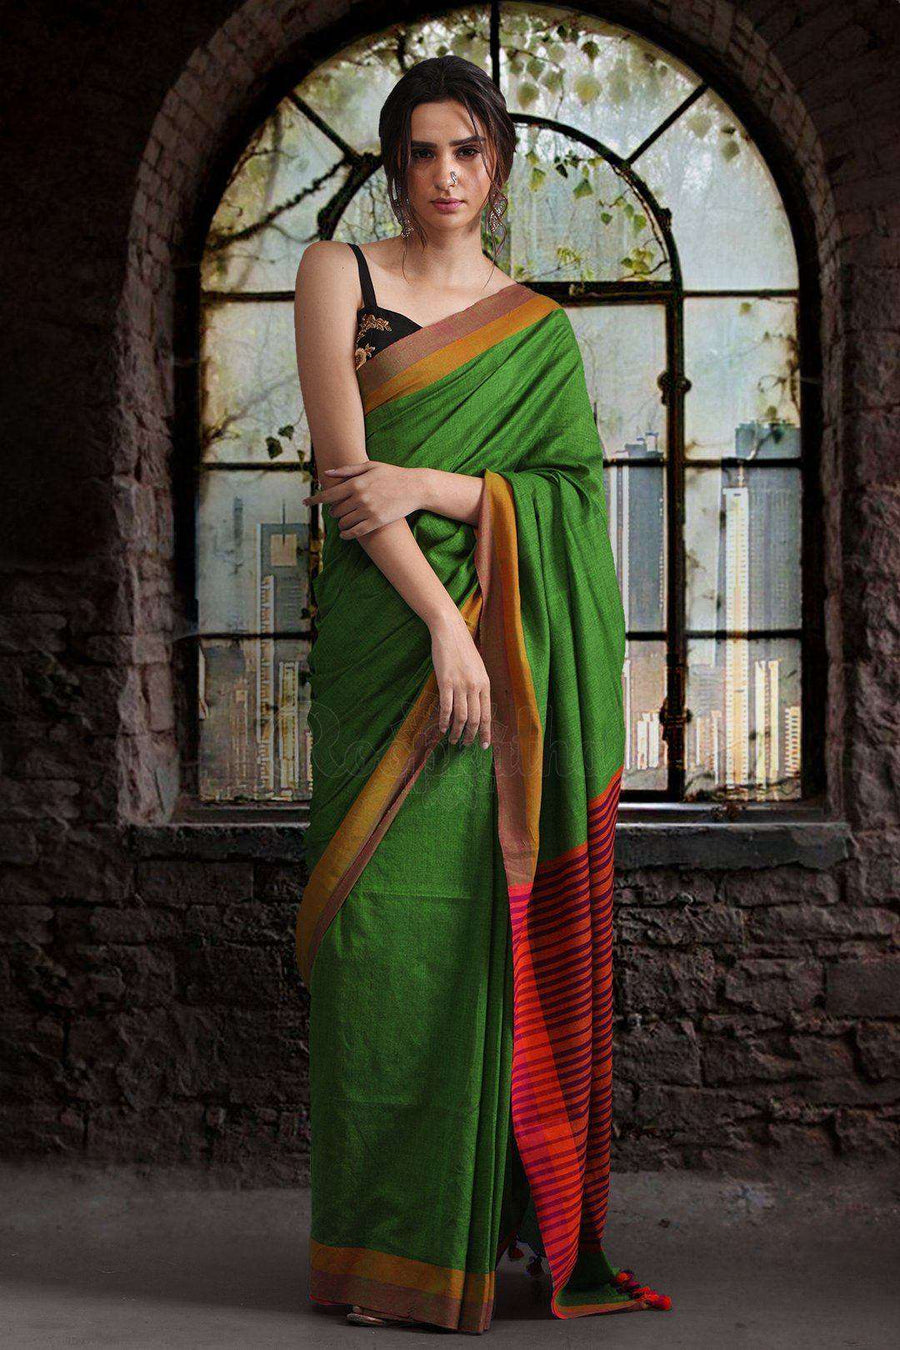 Light Green Pure Cotton Saree With Dual Borders Cotton Threads Of India Roopkatha - A Story of Art